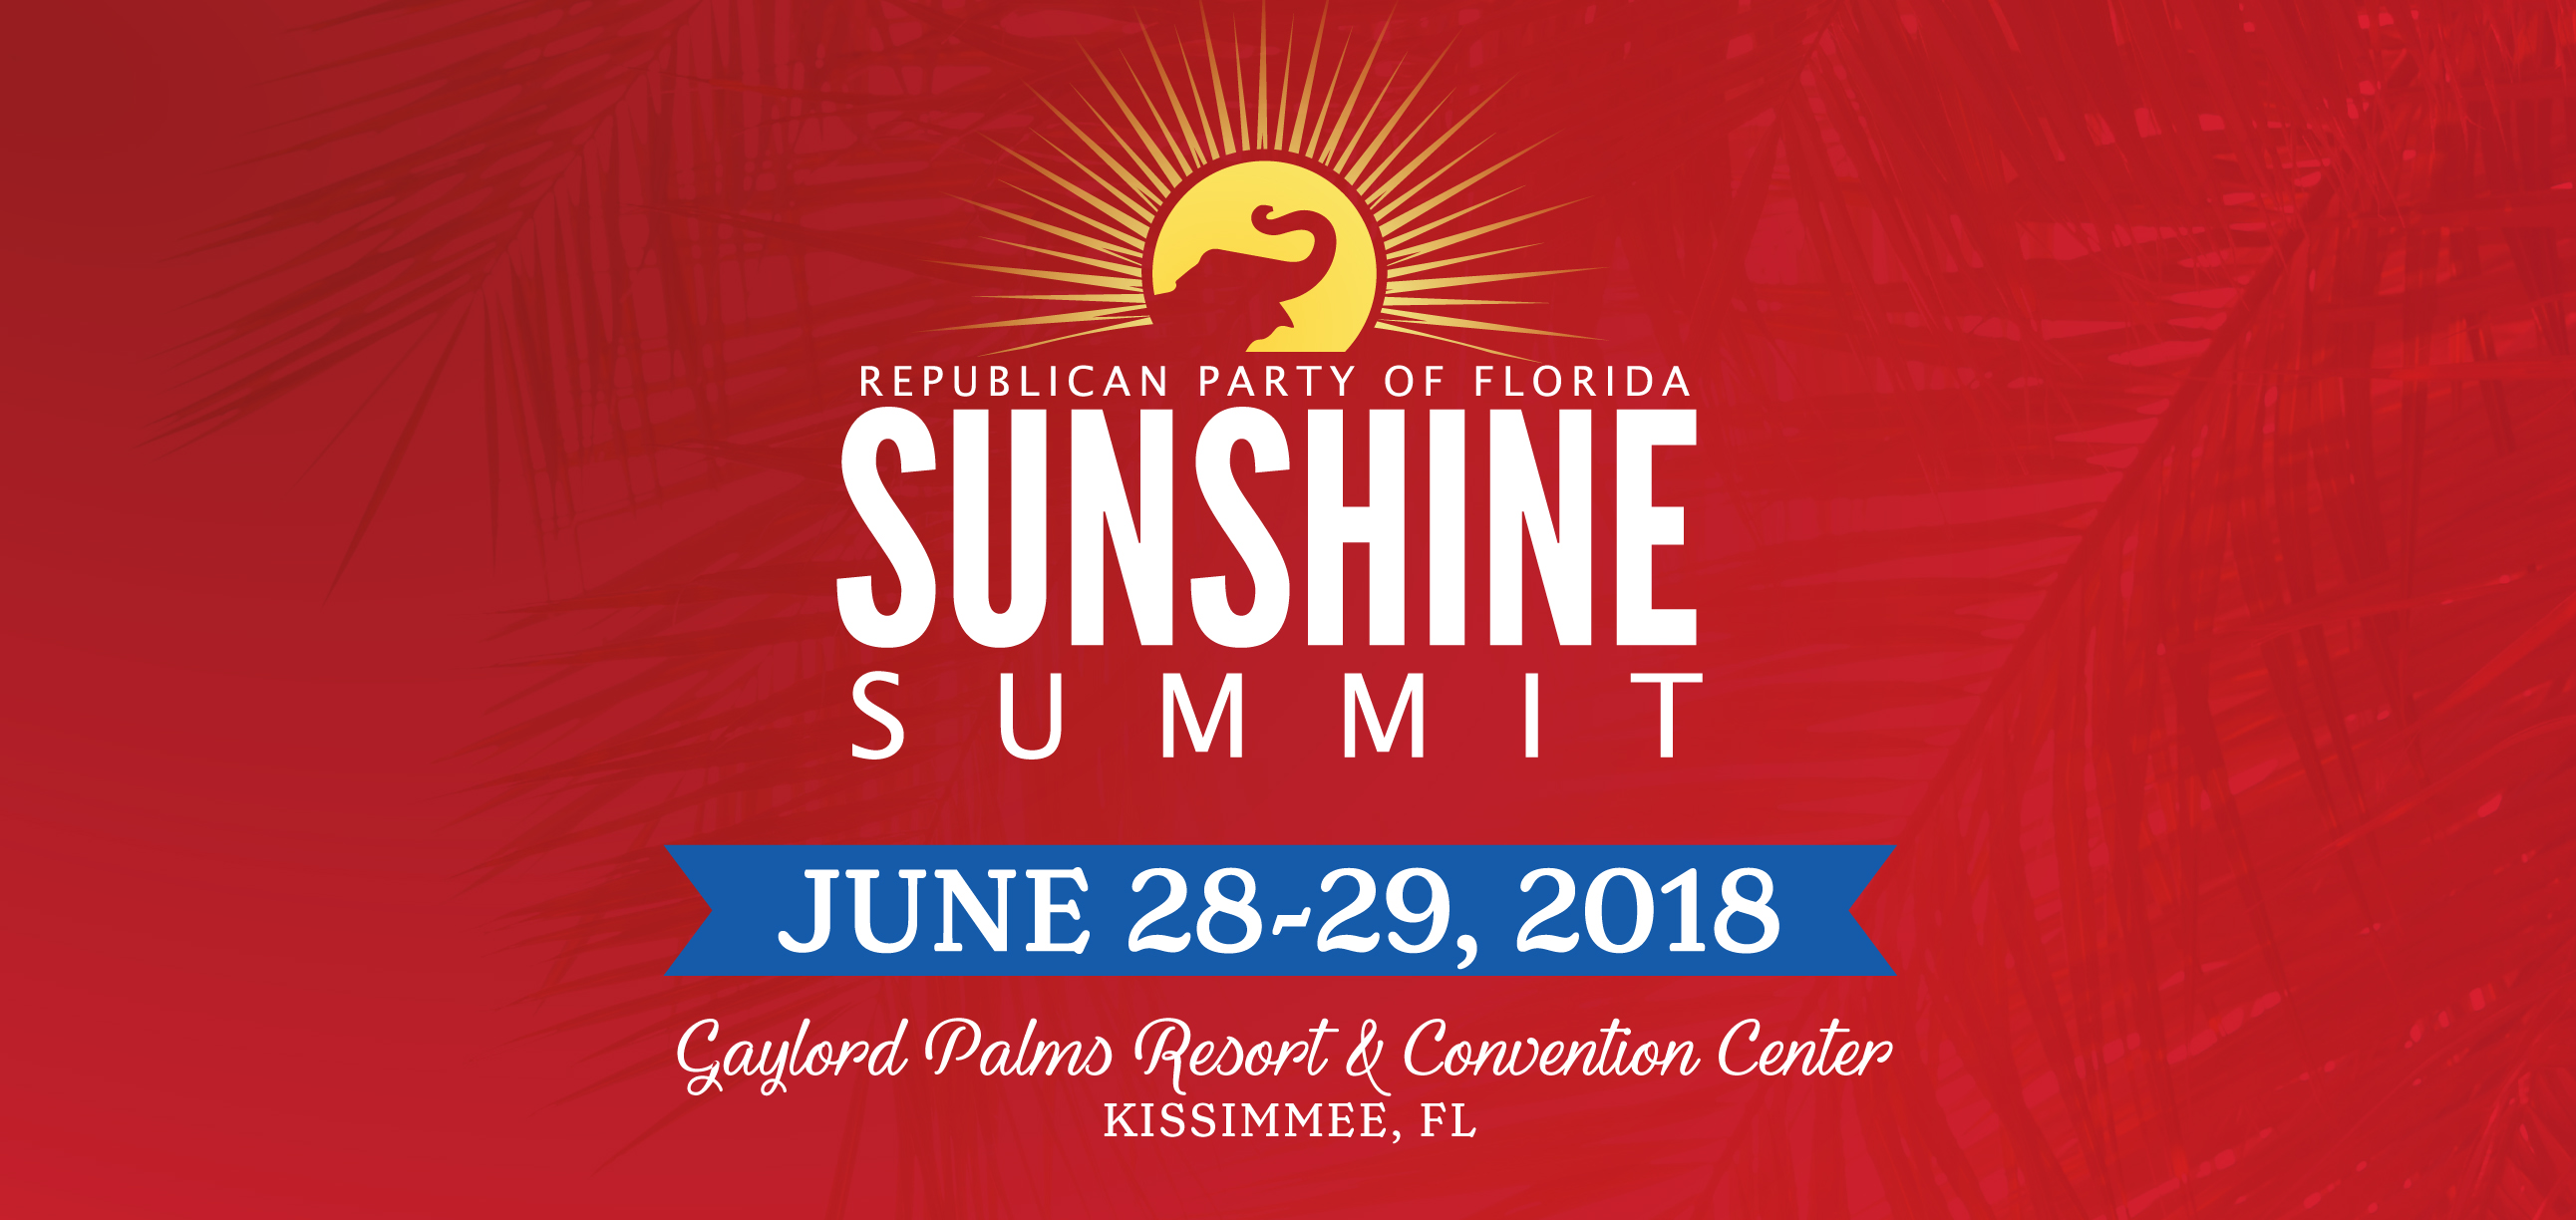 Available Now: Tickets for RPOF 2-Day Sunshine Summit Gubernatorial Debate & Special Guest Talks in Kissimmee